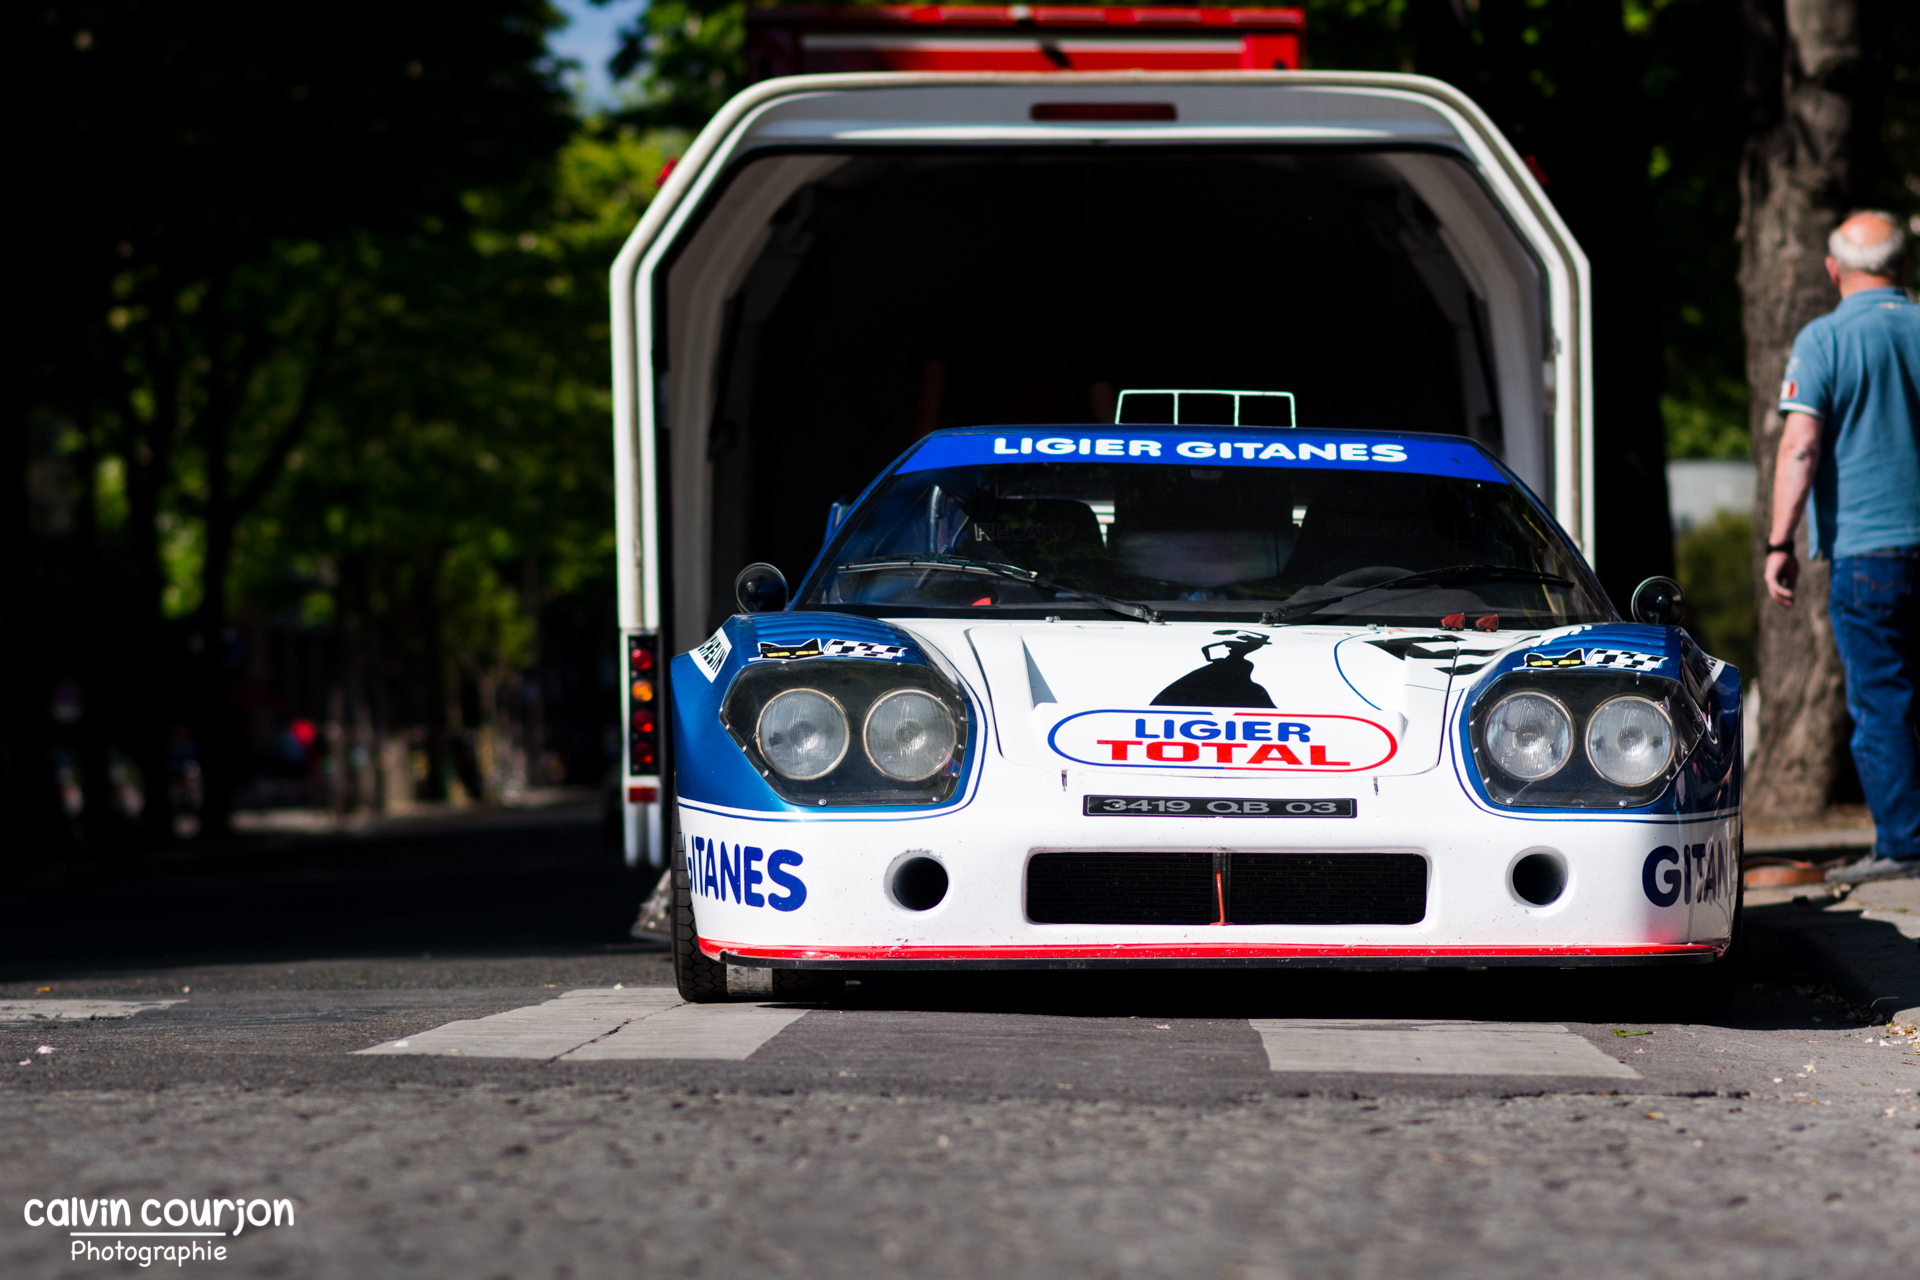 Ligier JS2 Cosworth - Tour Auto 2015 - Calvin Courjon Photographie